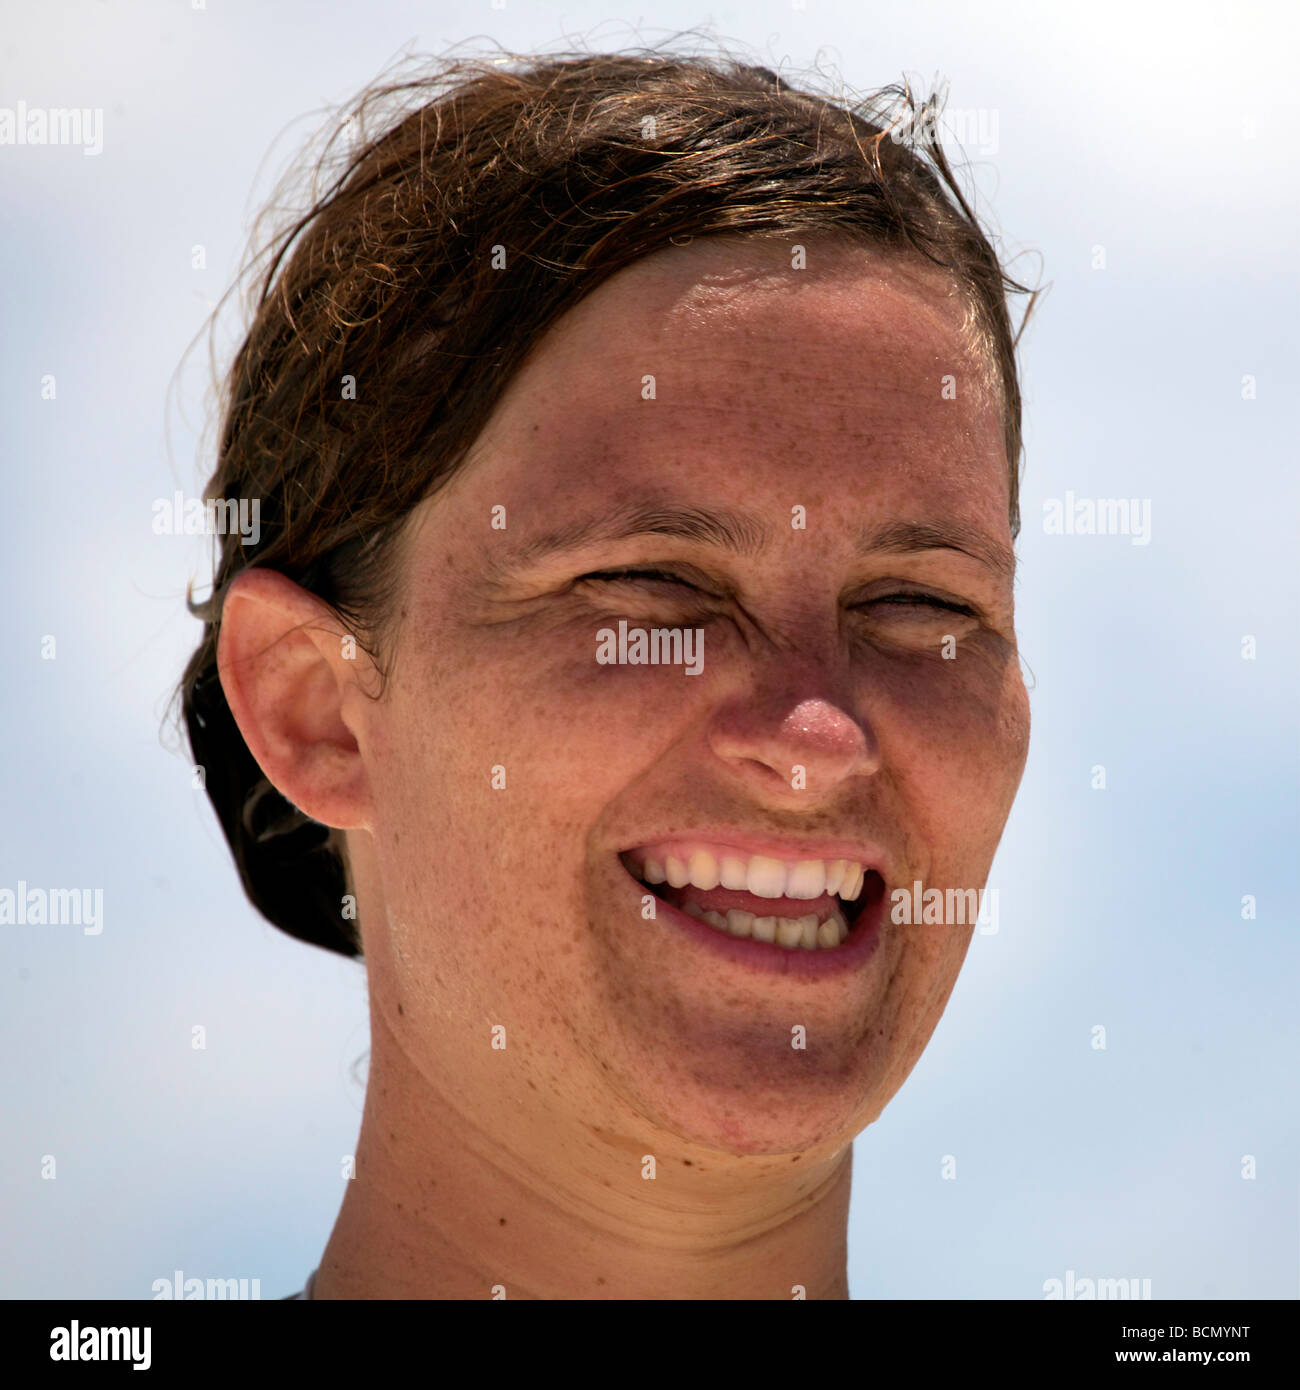 Smiling girl outdoors wet dishevelled hair freckles early twenties Nancia fresh faced - Stock Image